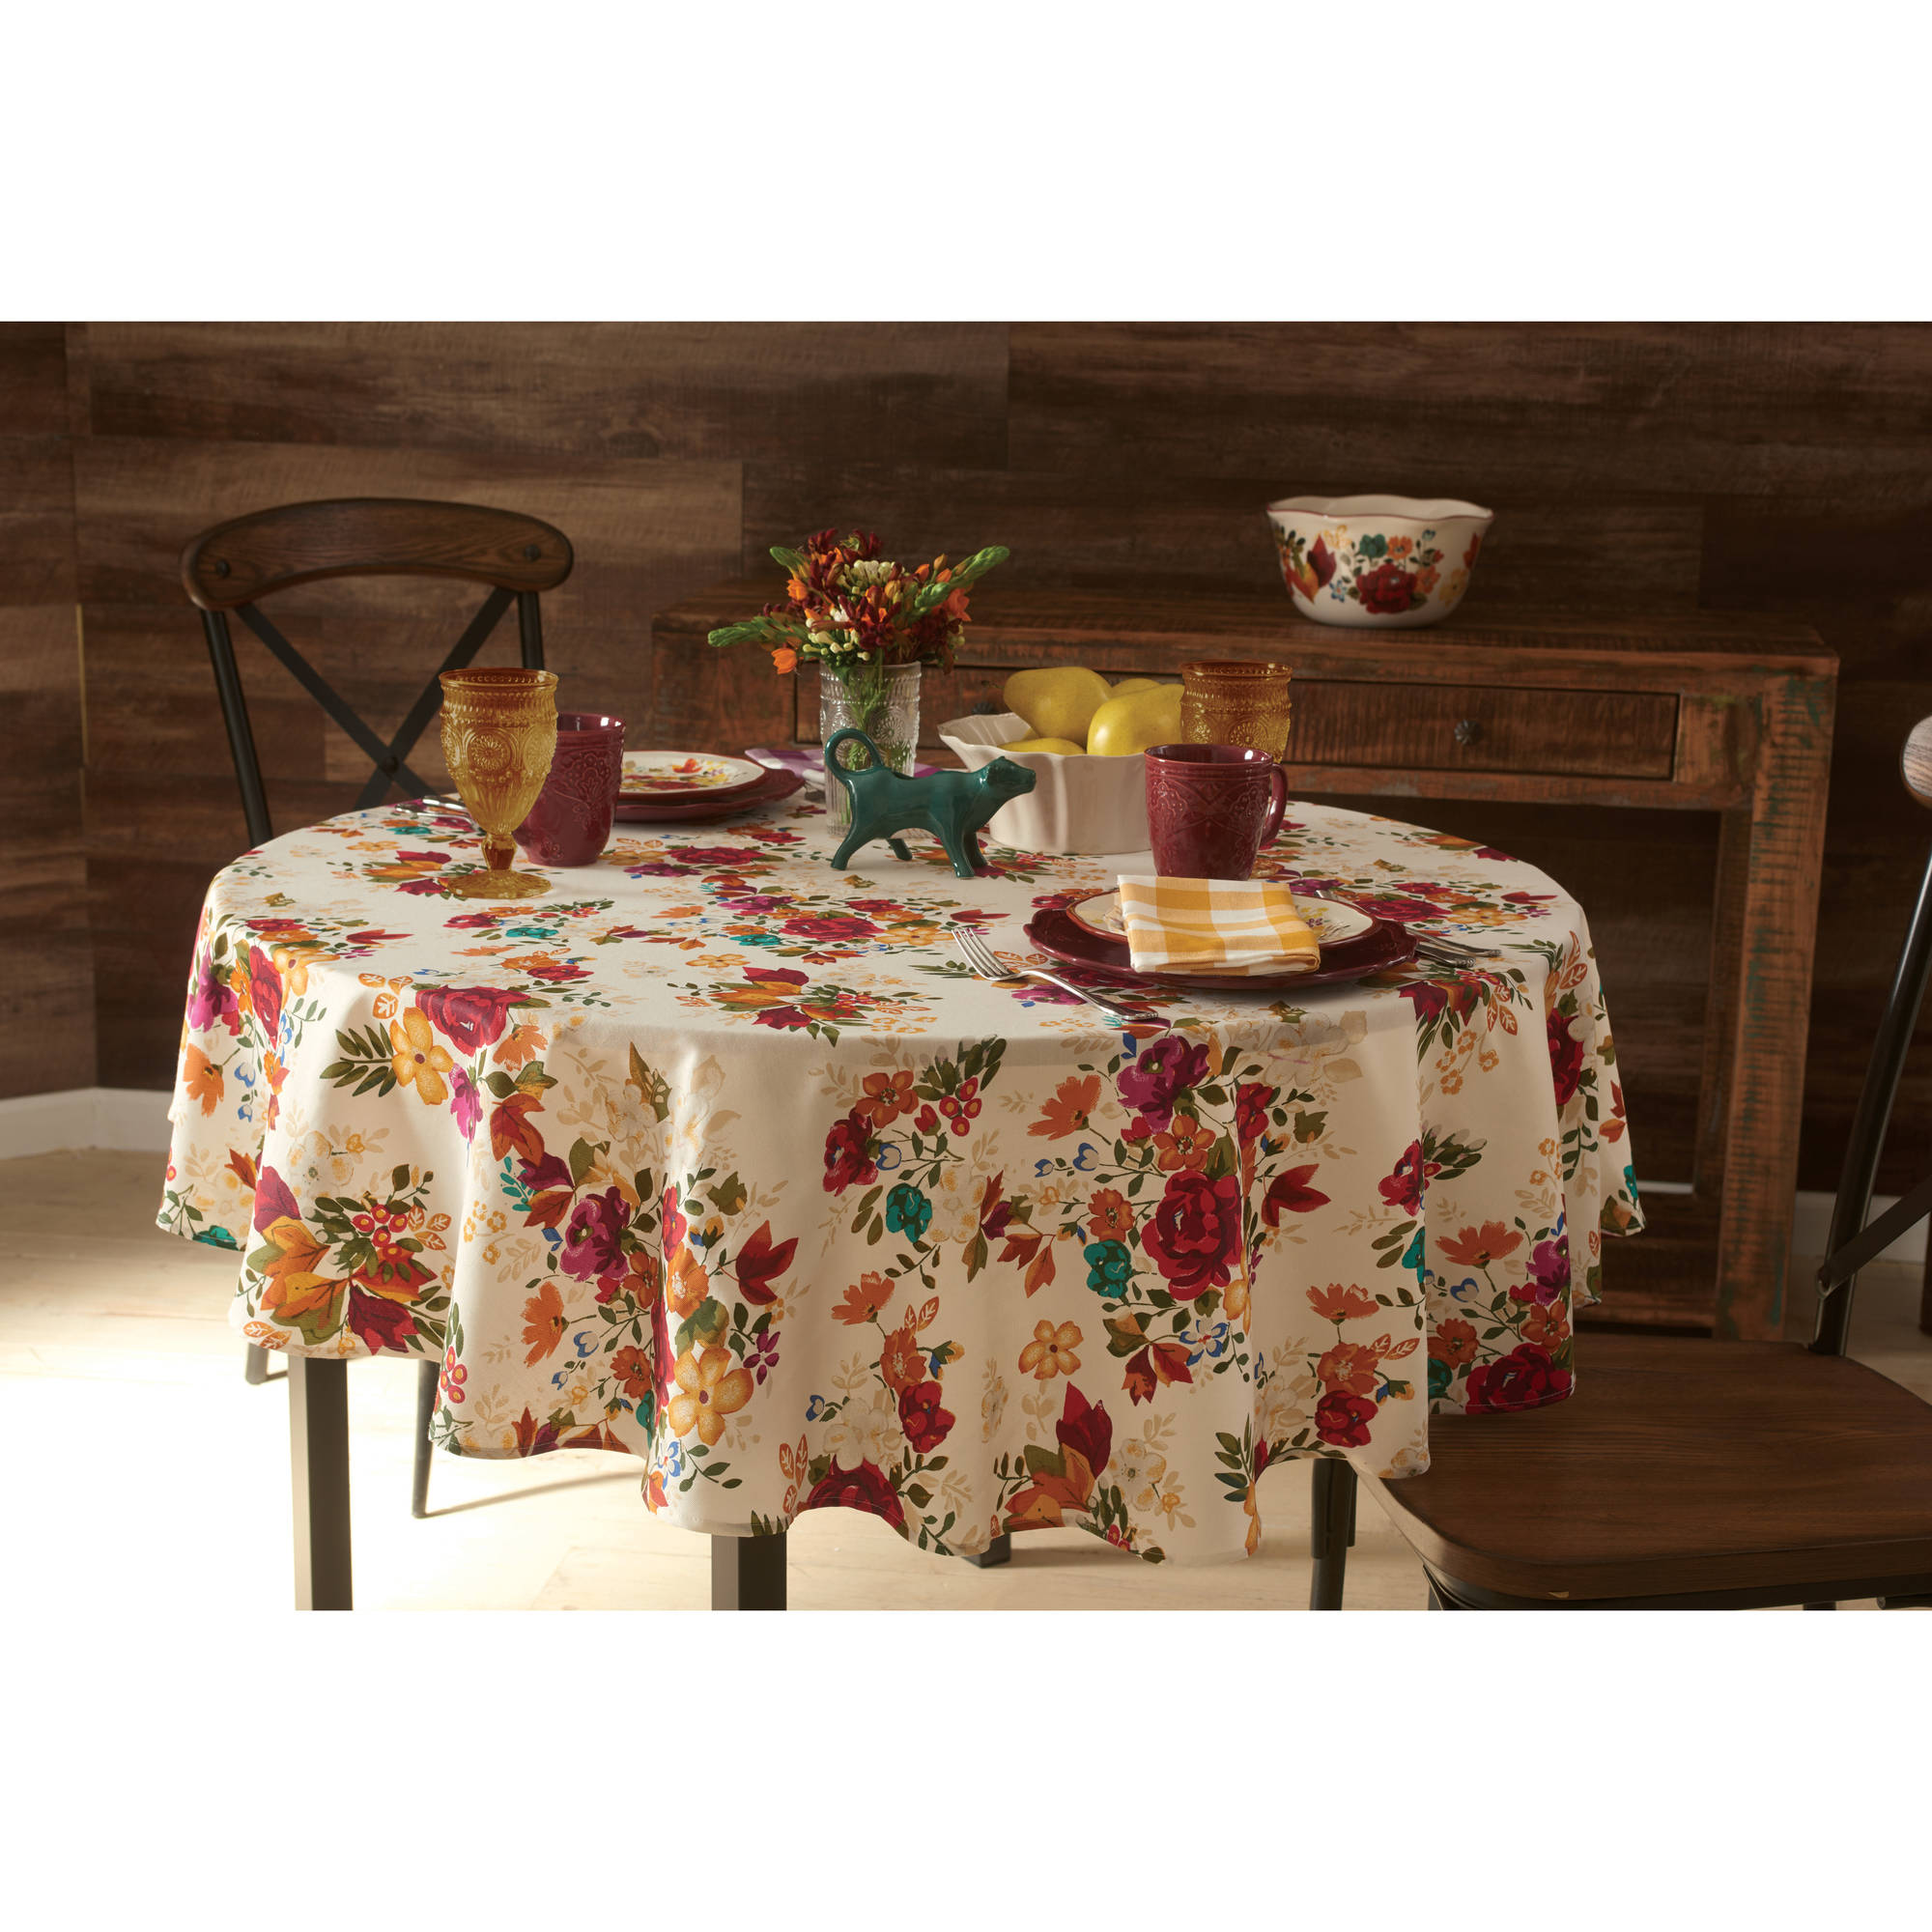 "Pioneer Woman Timeless Floral Tablecloth 70"" Round Walmart"